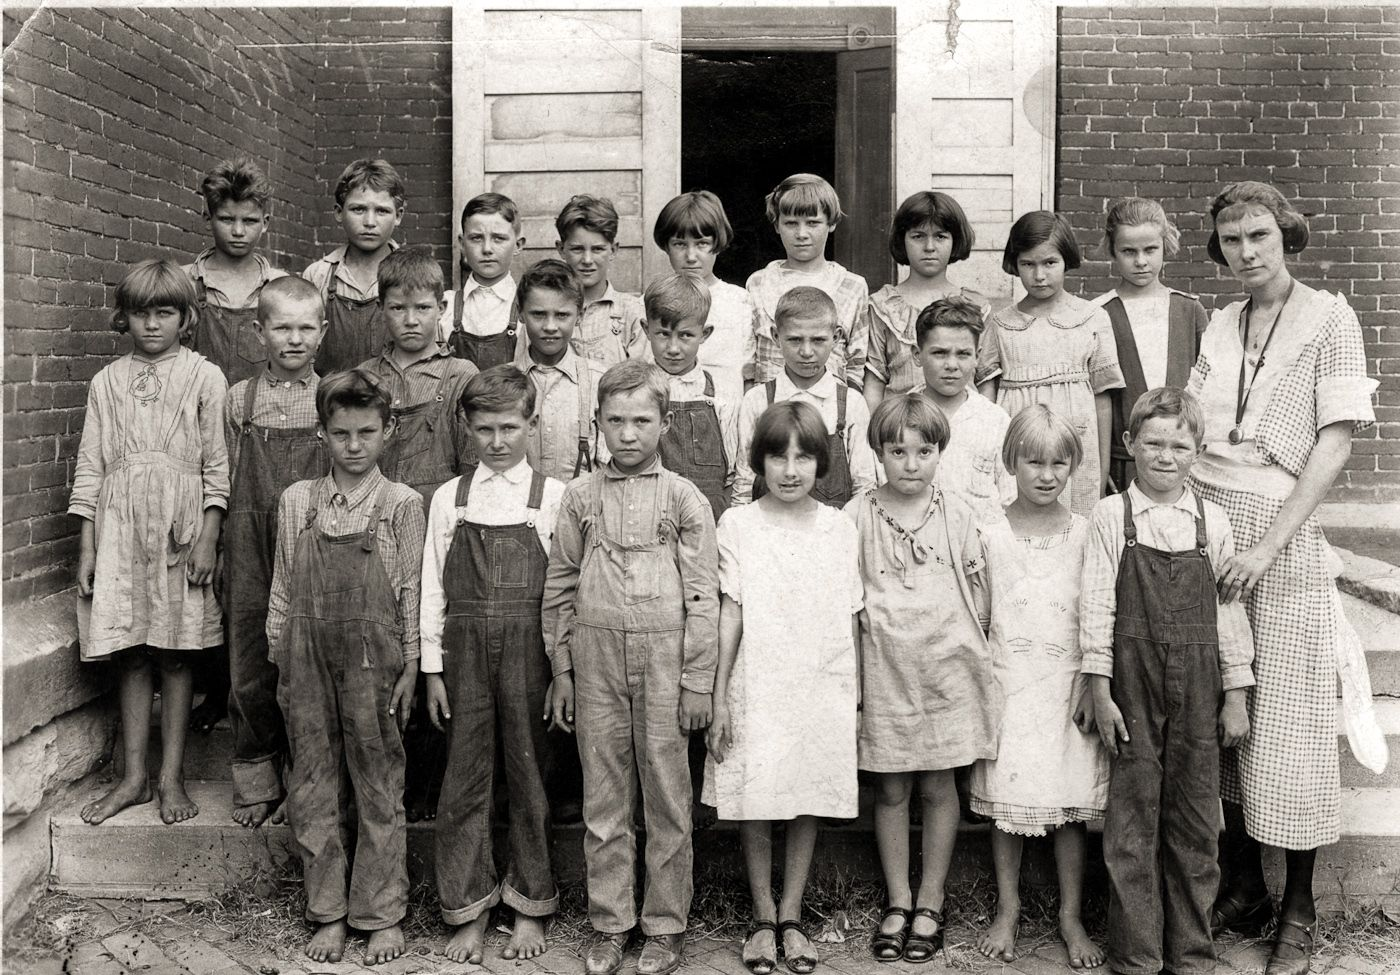 Real Vintage Clothing: Real Farm Life In Foster, Missouri 1920's. The Poor